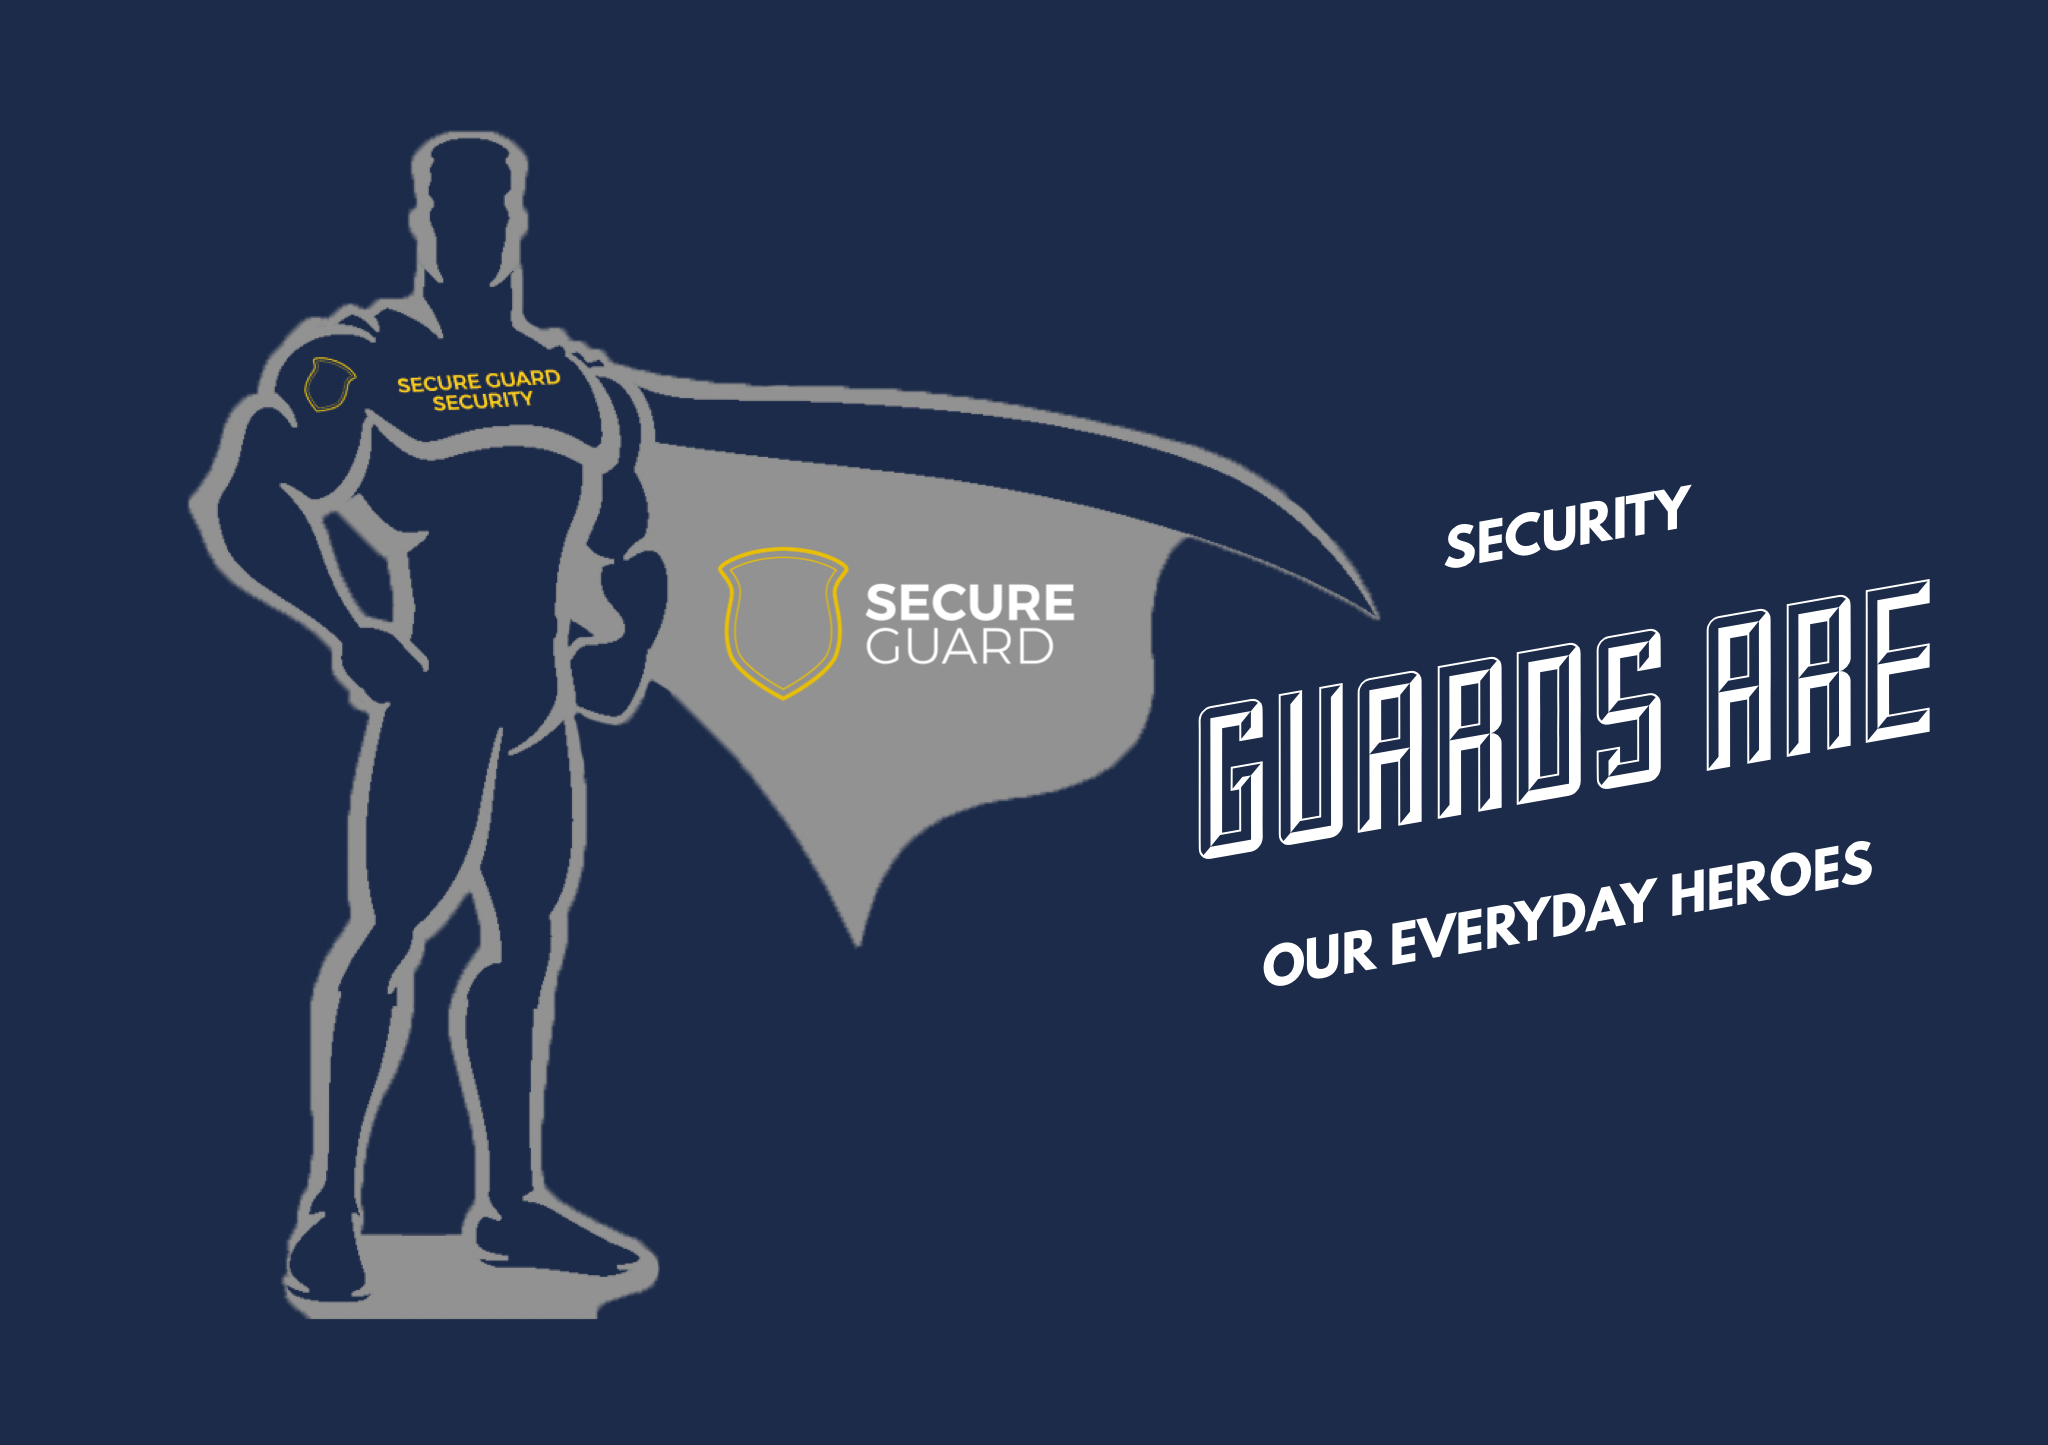 Security Guards Are Super Heroes